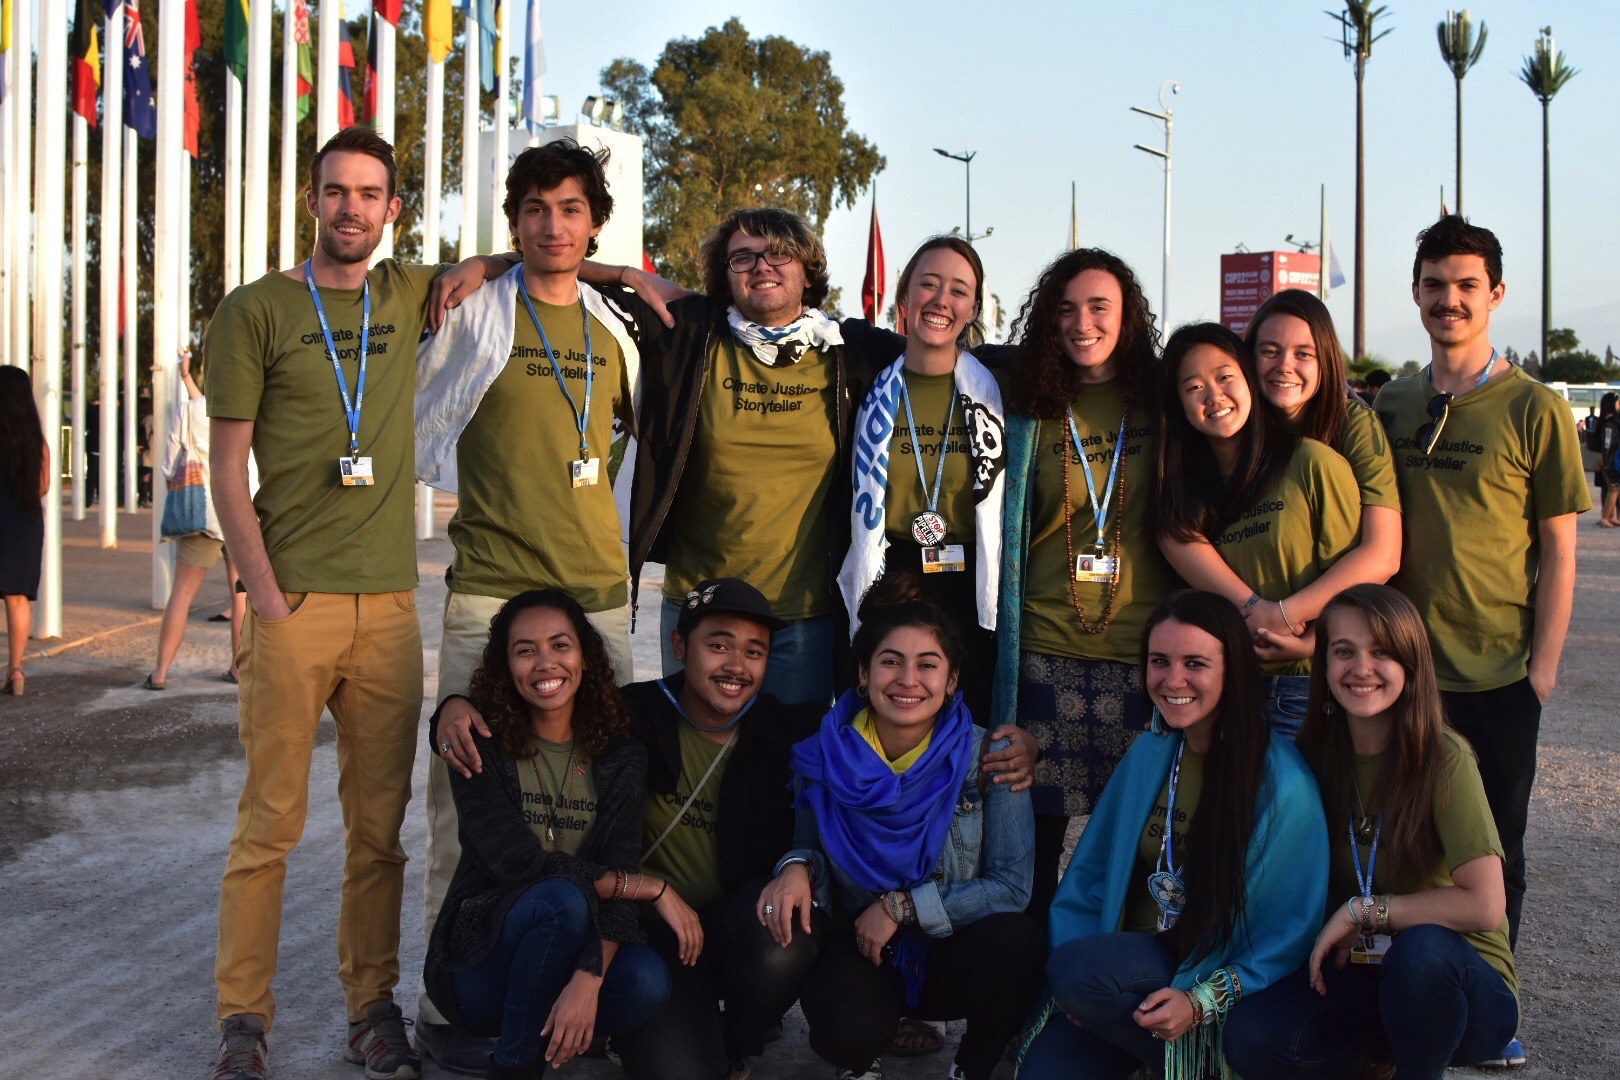 Remy Franklin '13 (back left) and Morgan Curtis '14 (front right) were among 13 young climate leaders that attended the UN climate talks as part of the SustainUS COP22 delegation.